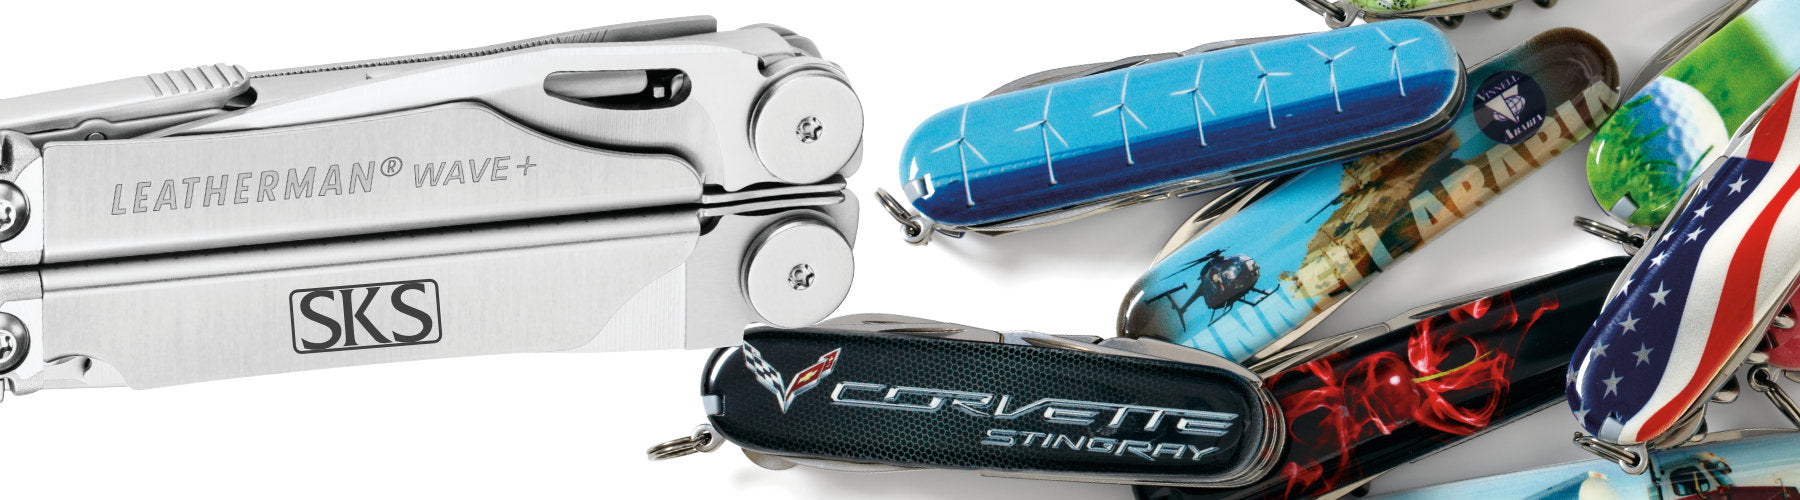 Custom Corporate Logo Imprints on Victorinox Swiss Army Knives, Leatherman Tools, KeySmart Key Carriers and More at Swiss Knife Shop